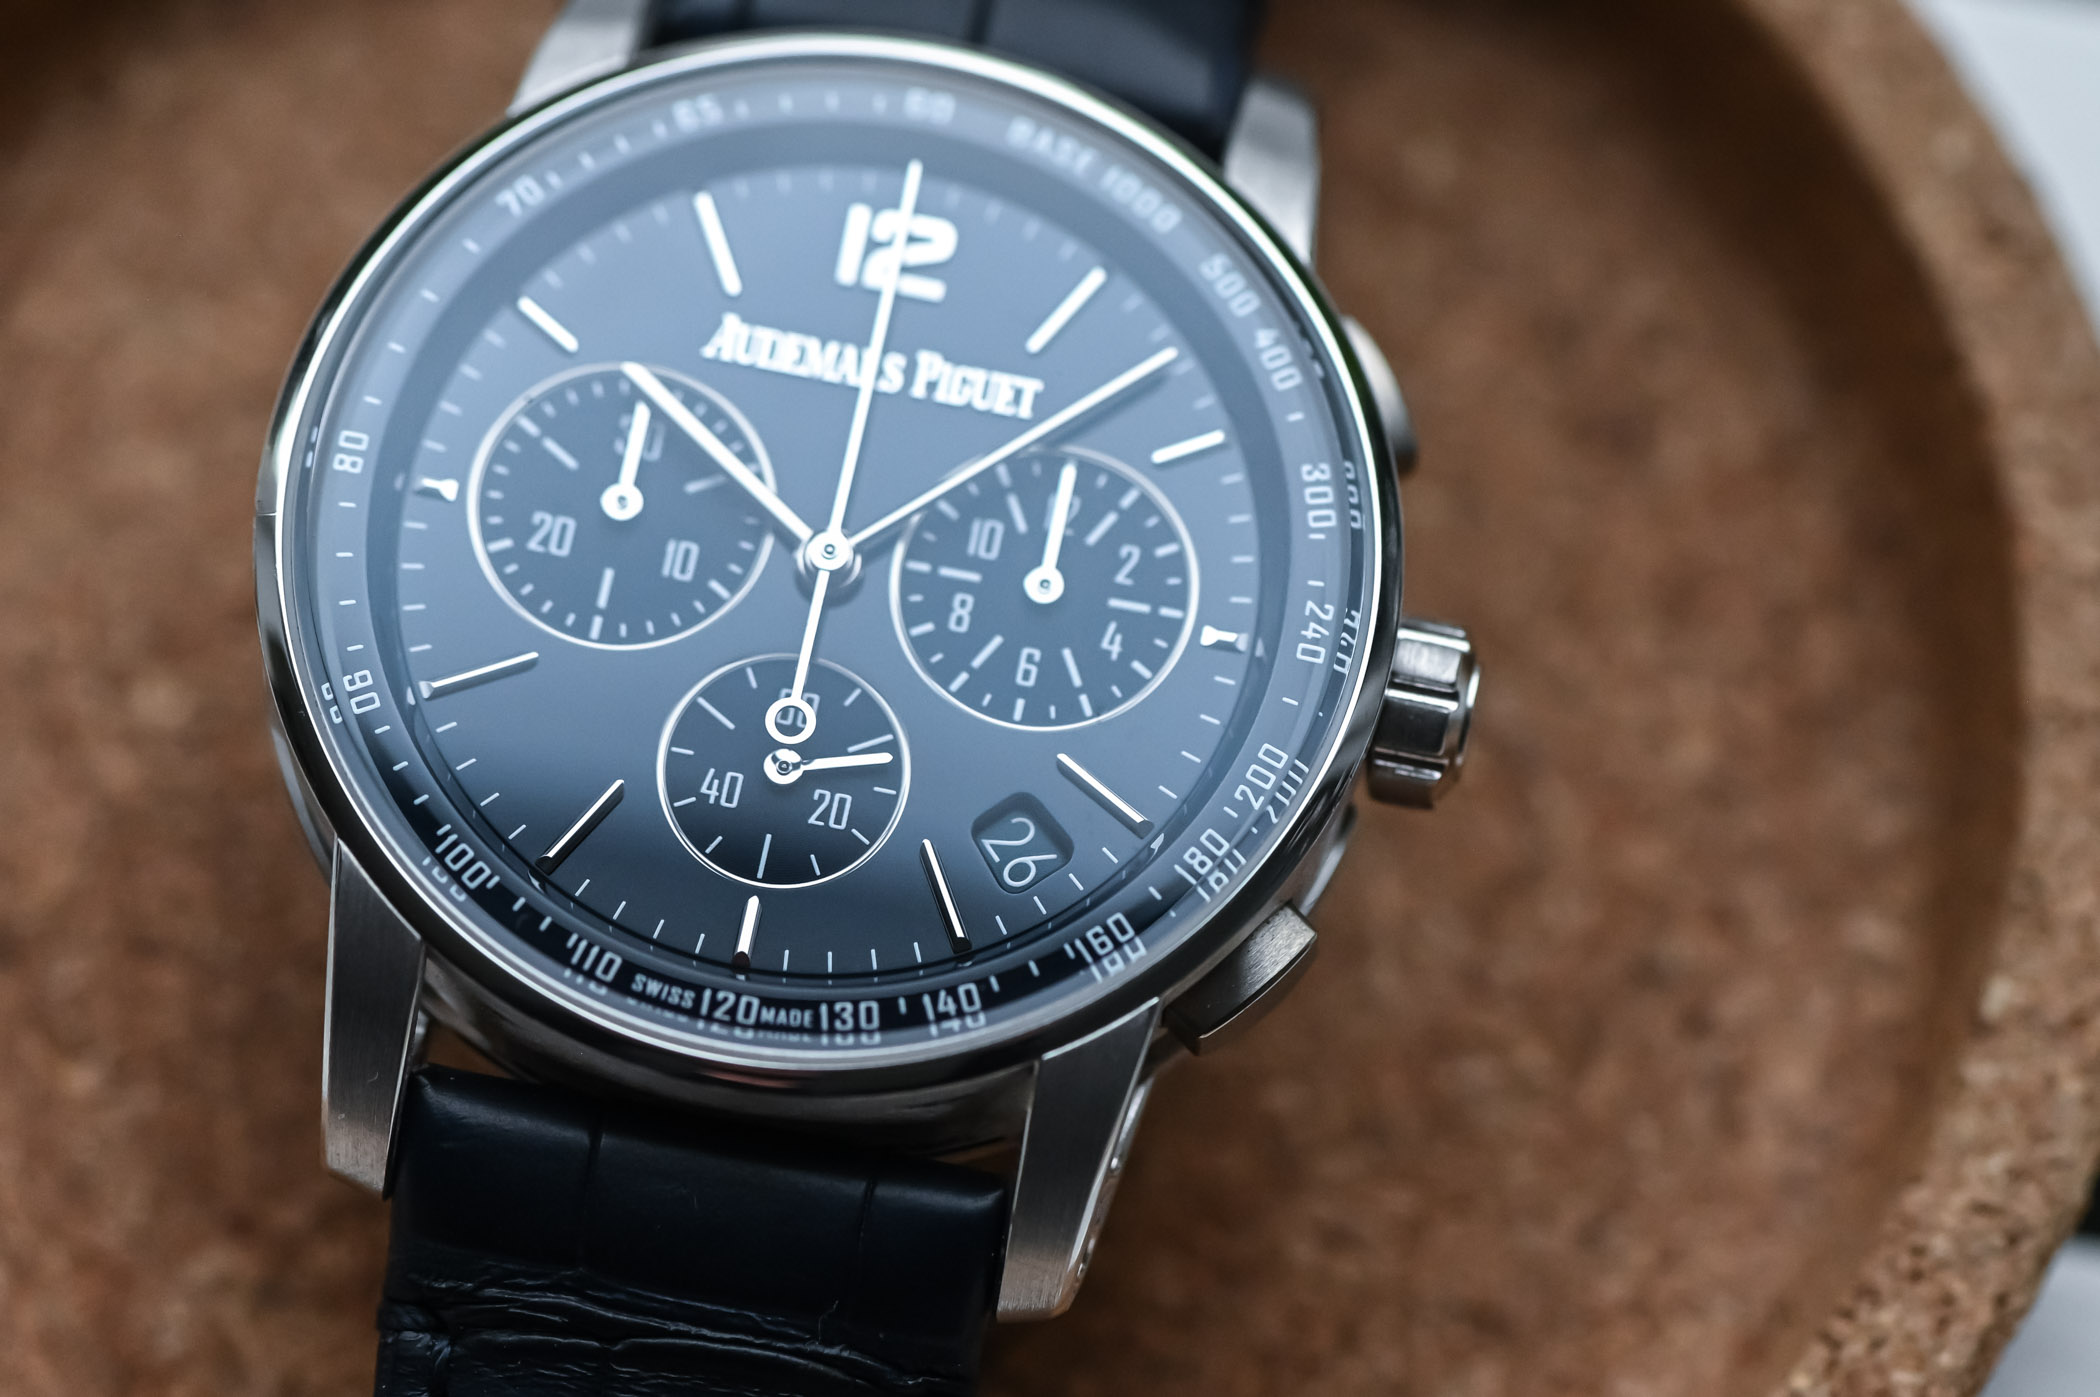 Code 11.59 by Audemars Piguet Selfwinding Chronograph Review - lacquered dial